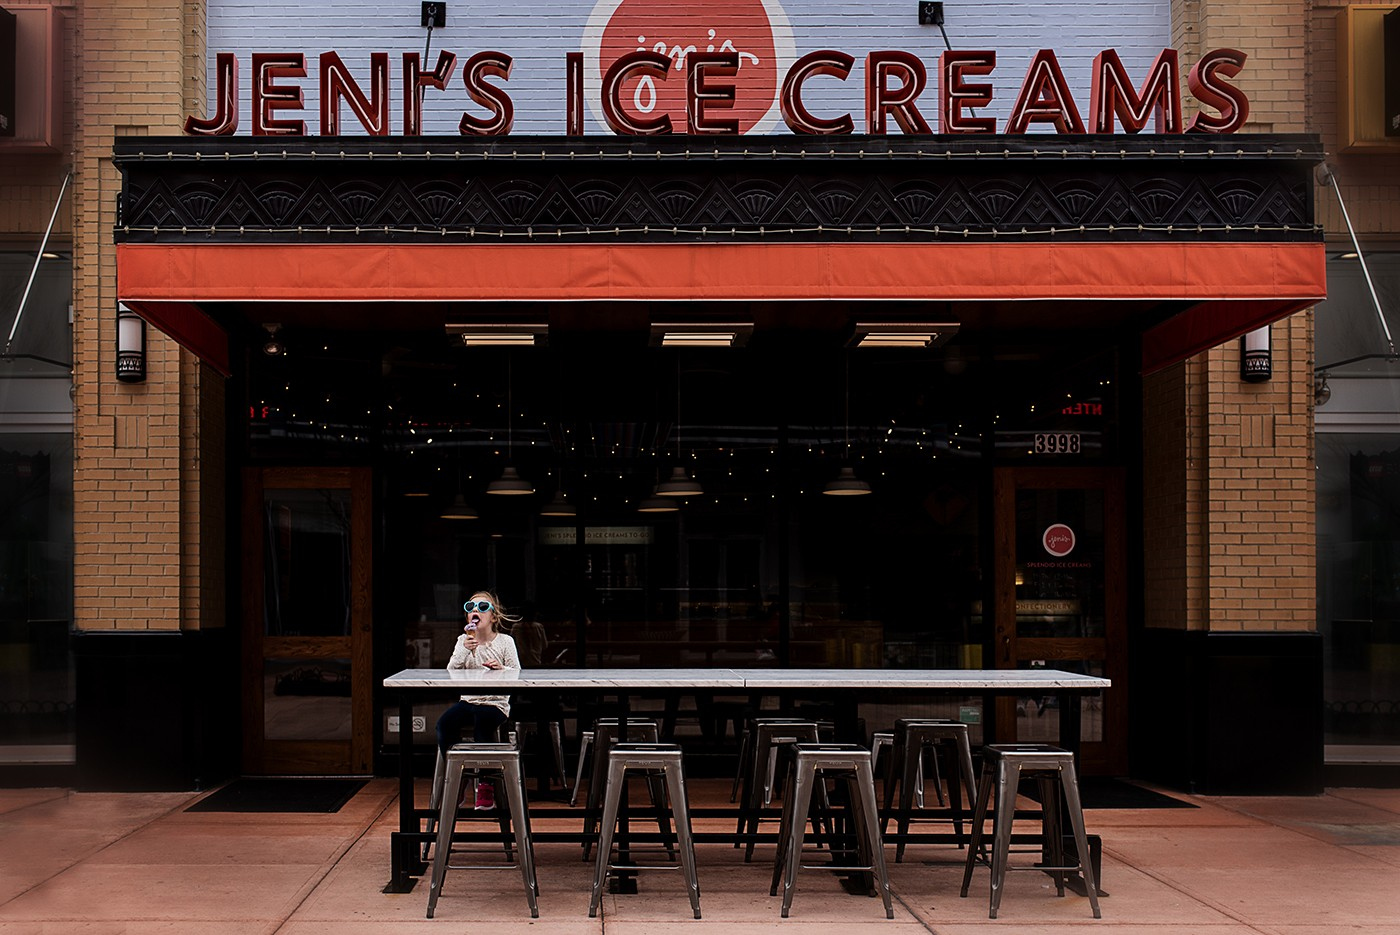 Ice Creams by Kellie Bieser